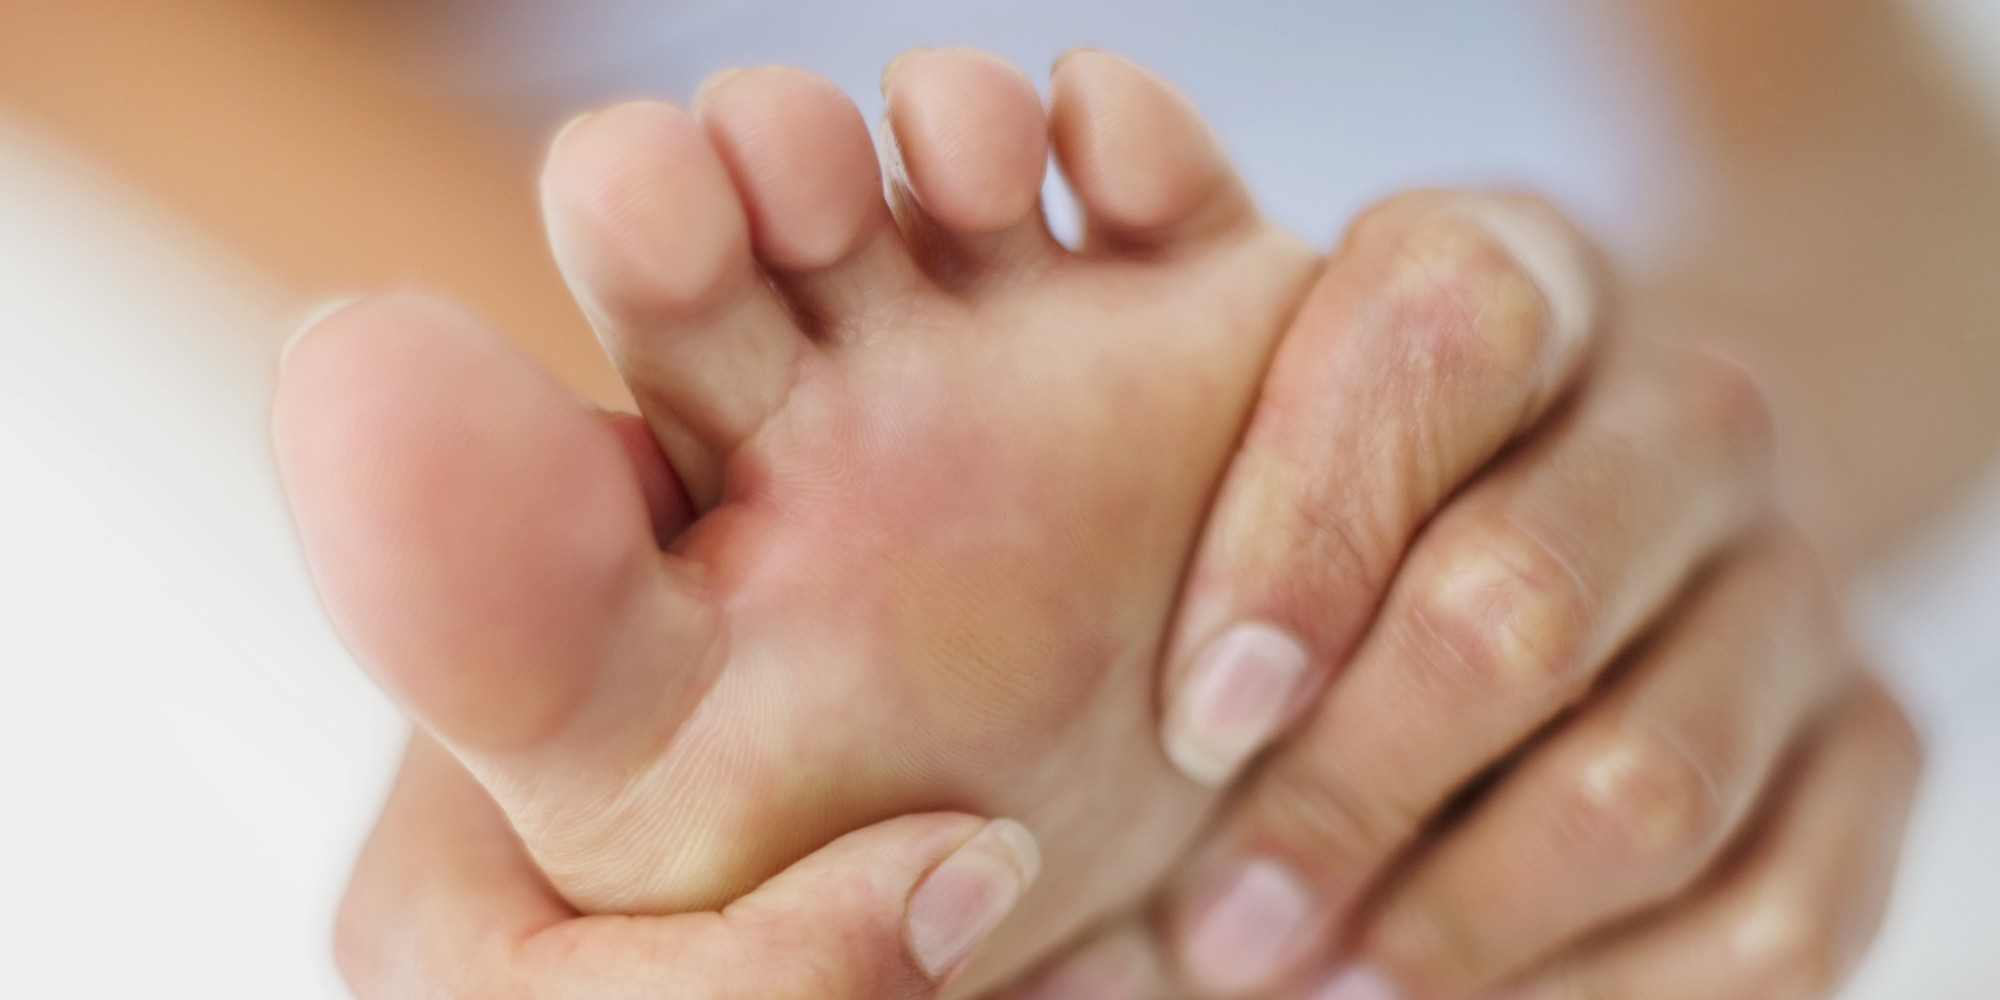 common causes of foot pain while sleeping | huffpost, Skeleton